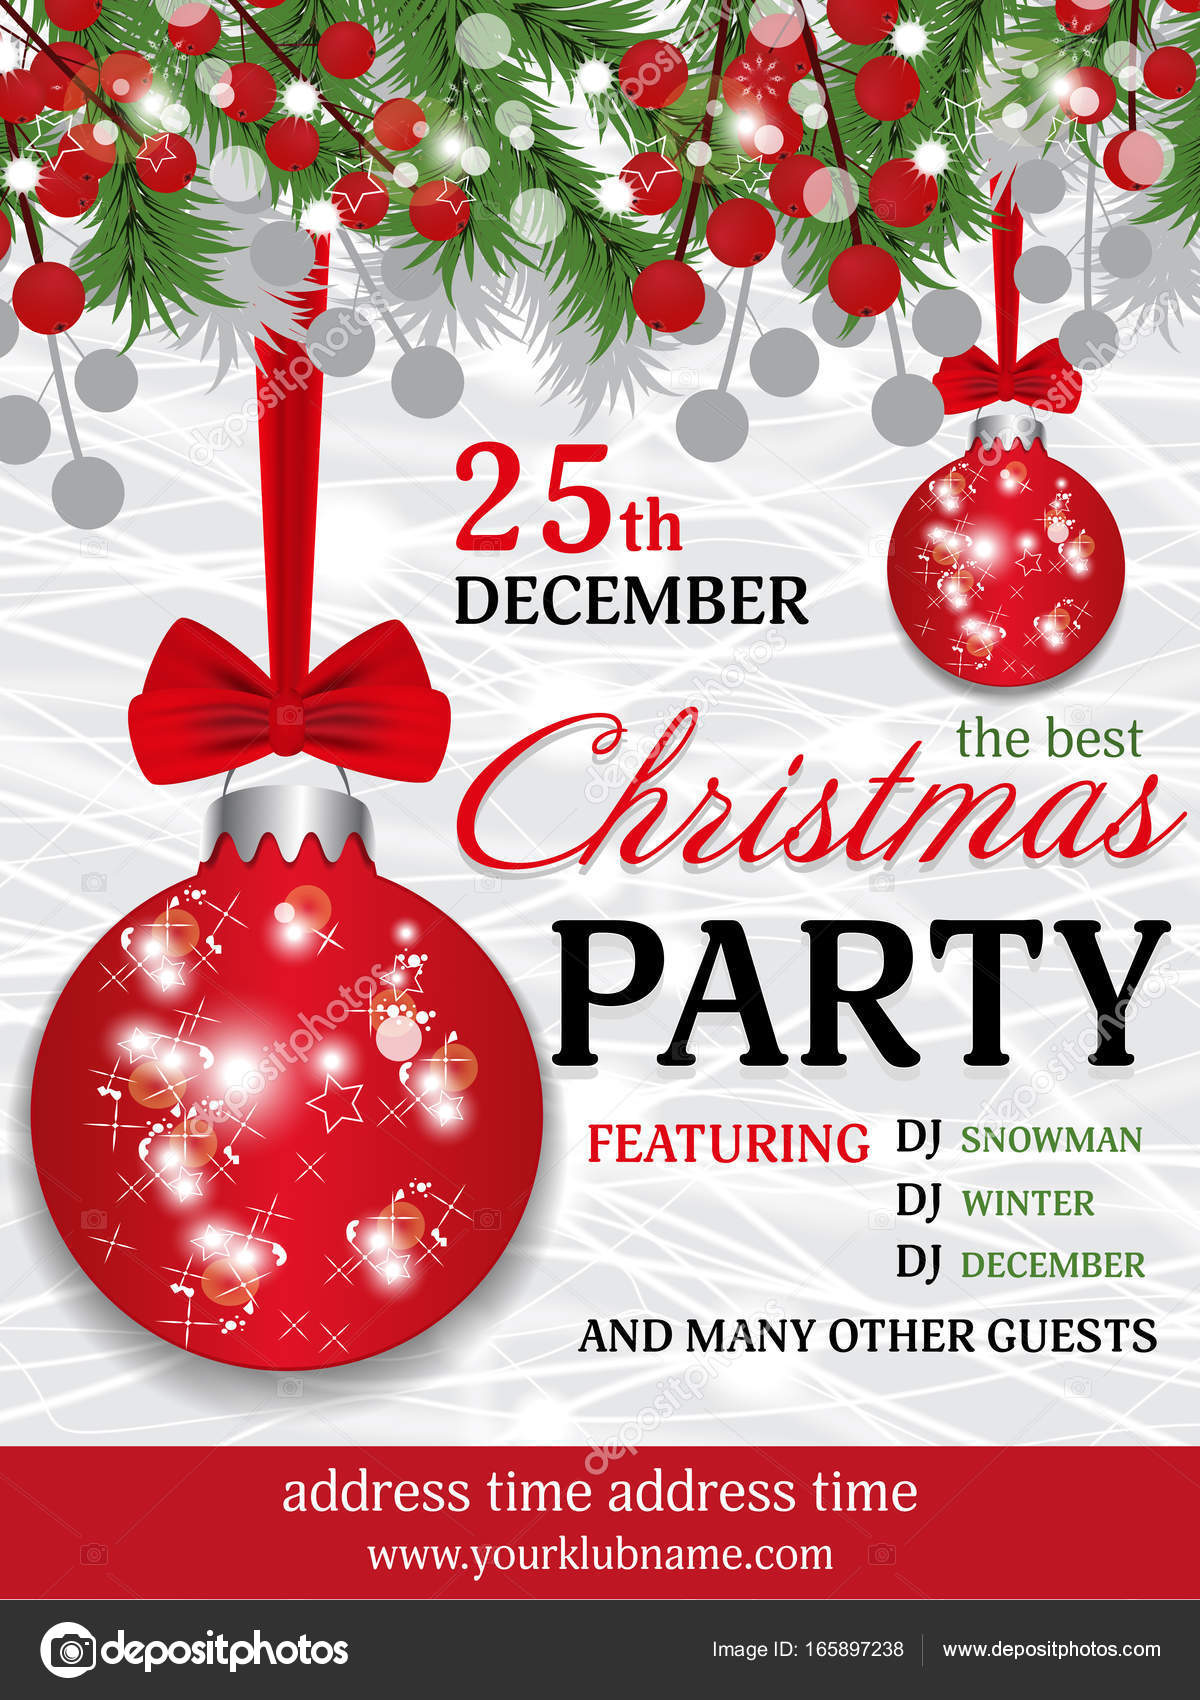 Christmas party invitation template background with fir branches and